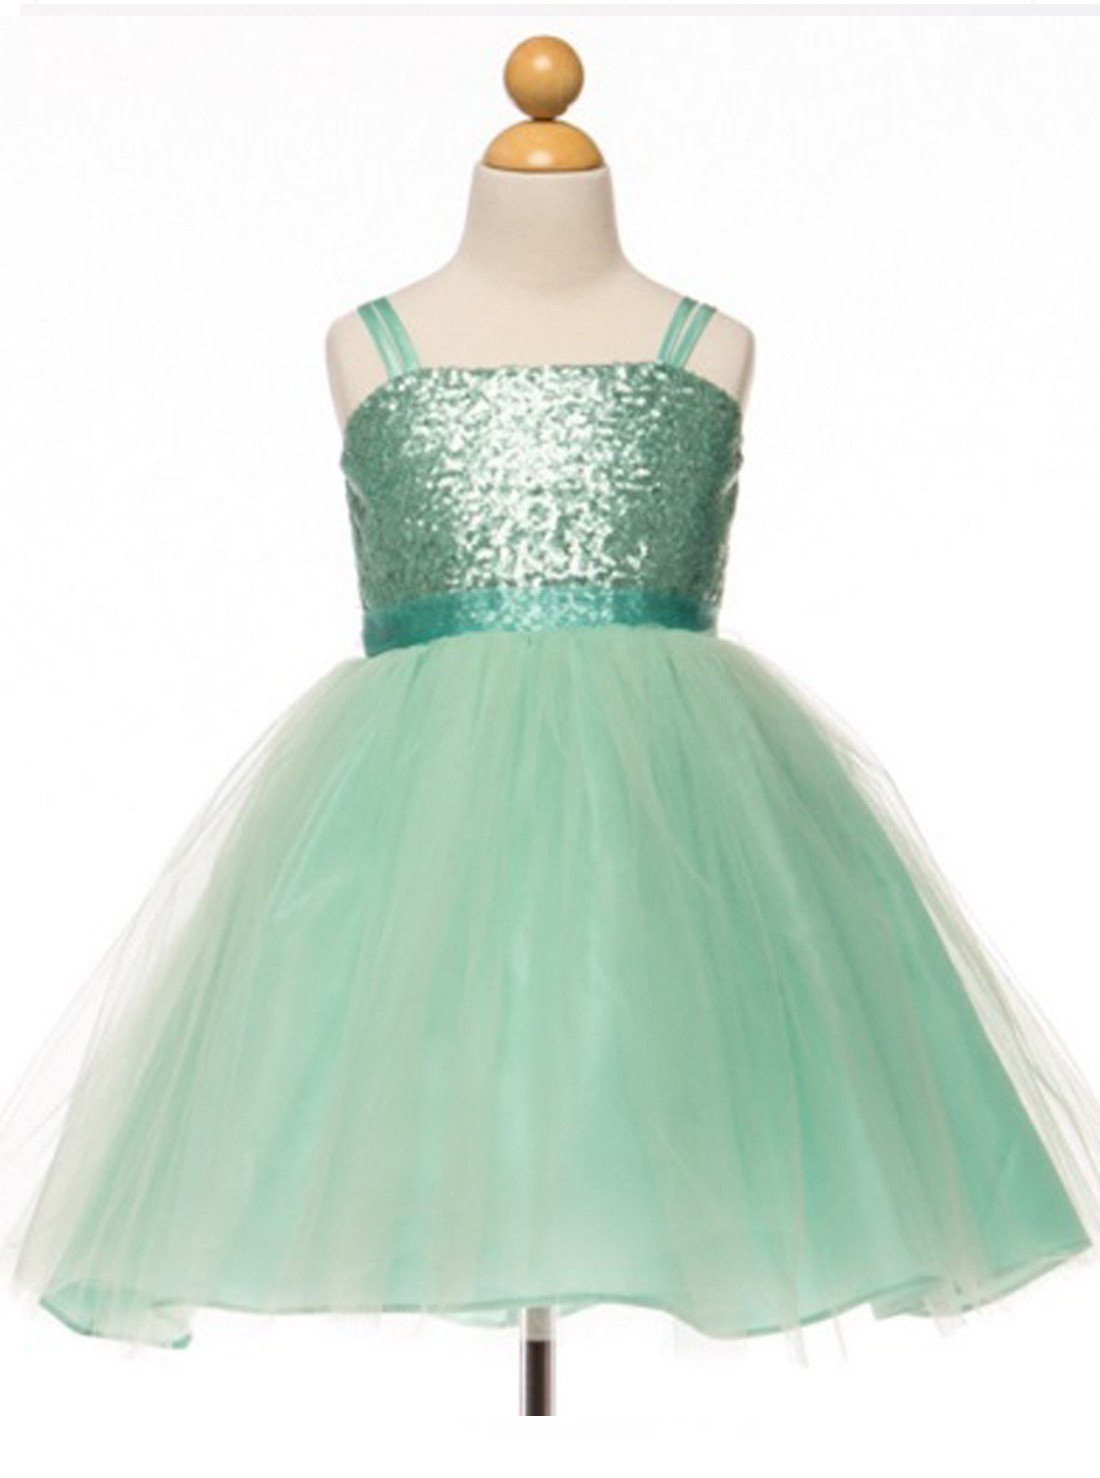 Flower Girl Dress Sequined Bodice and Tulle Overlay Skirt DressMint Party Dress Special Occasion Dress